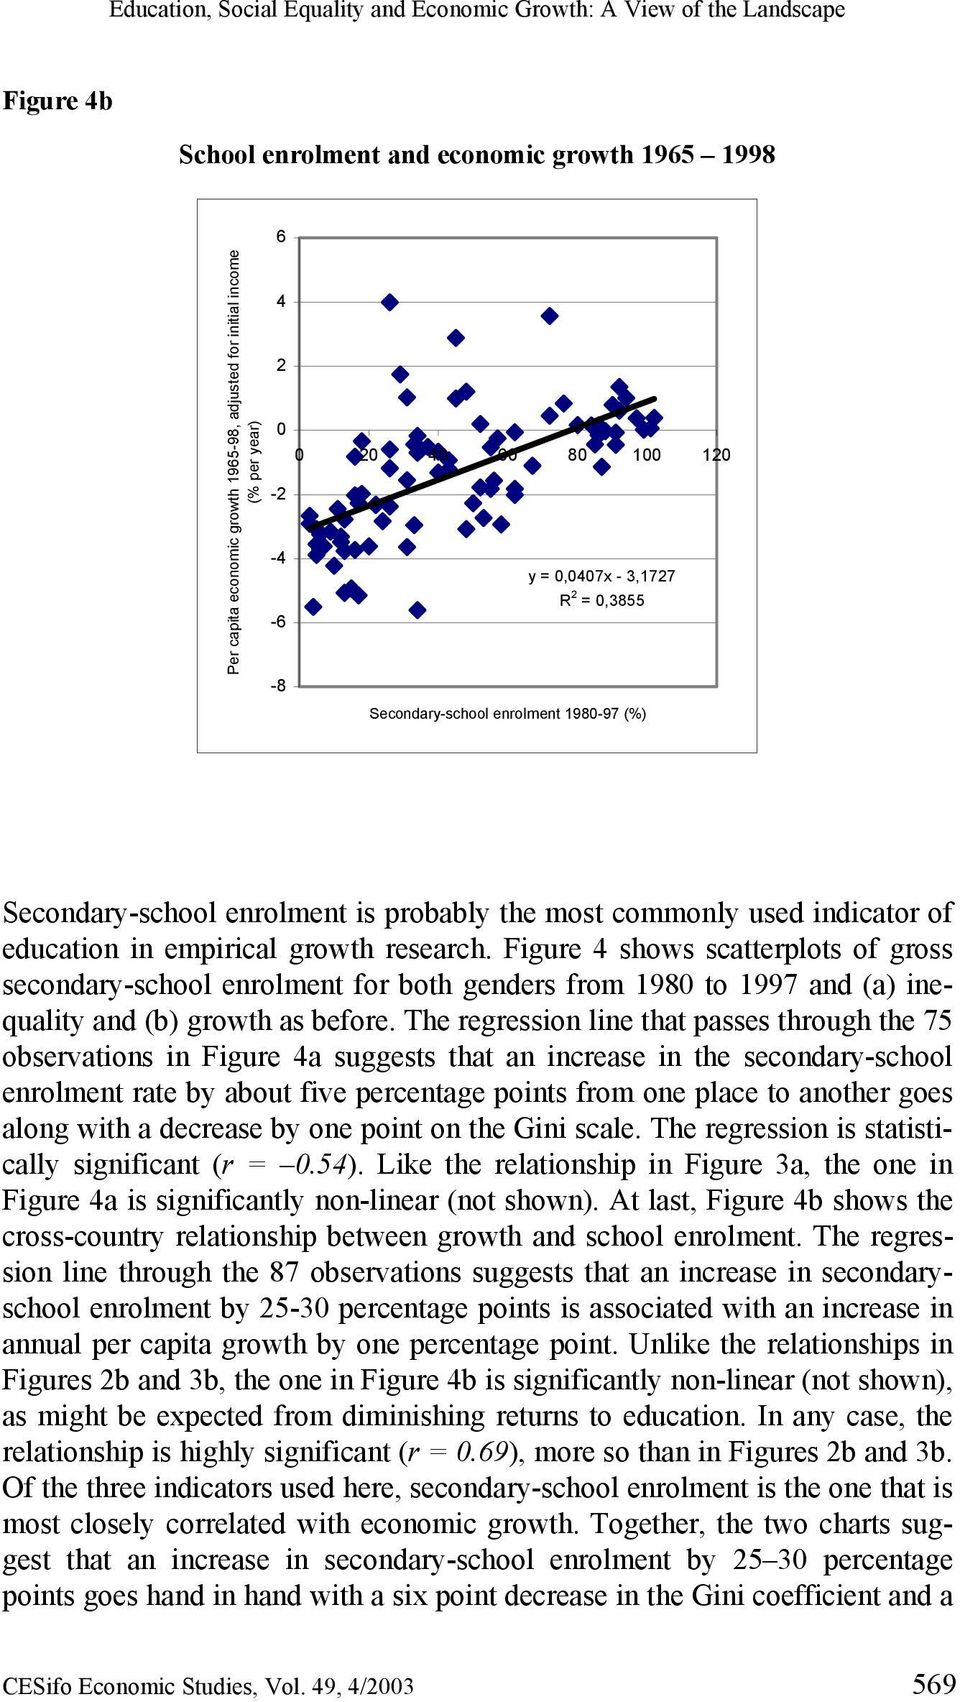 education in empirical growth research. Figure 4 shows scatterplots of gross secondary-school enrolment for both genders from 1980 to 1997 and (a) inequality and (b) growth as before.